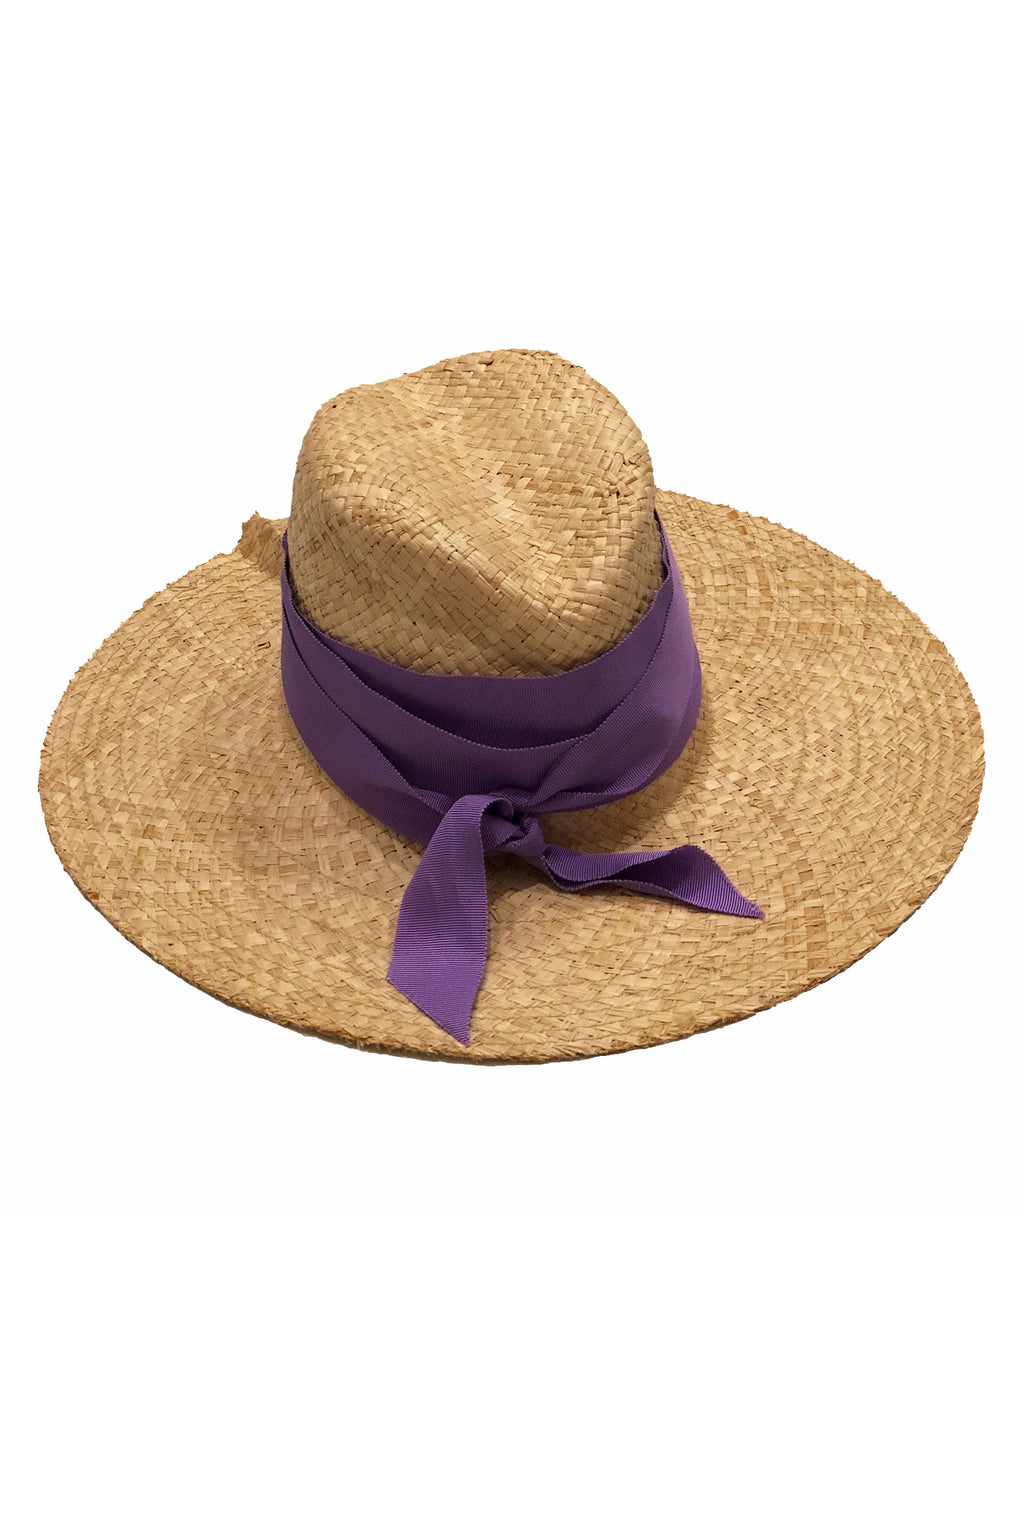 Lola Ehlrich First Aid Bis Hat in Natural /Lavender